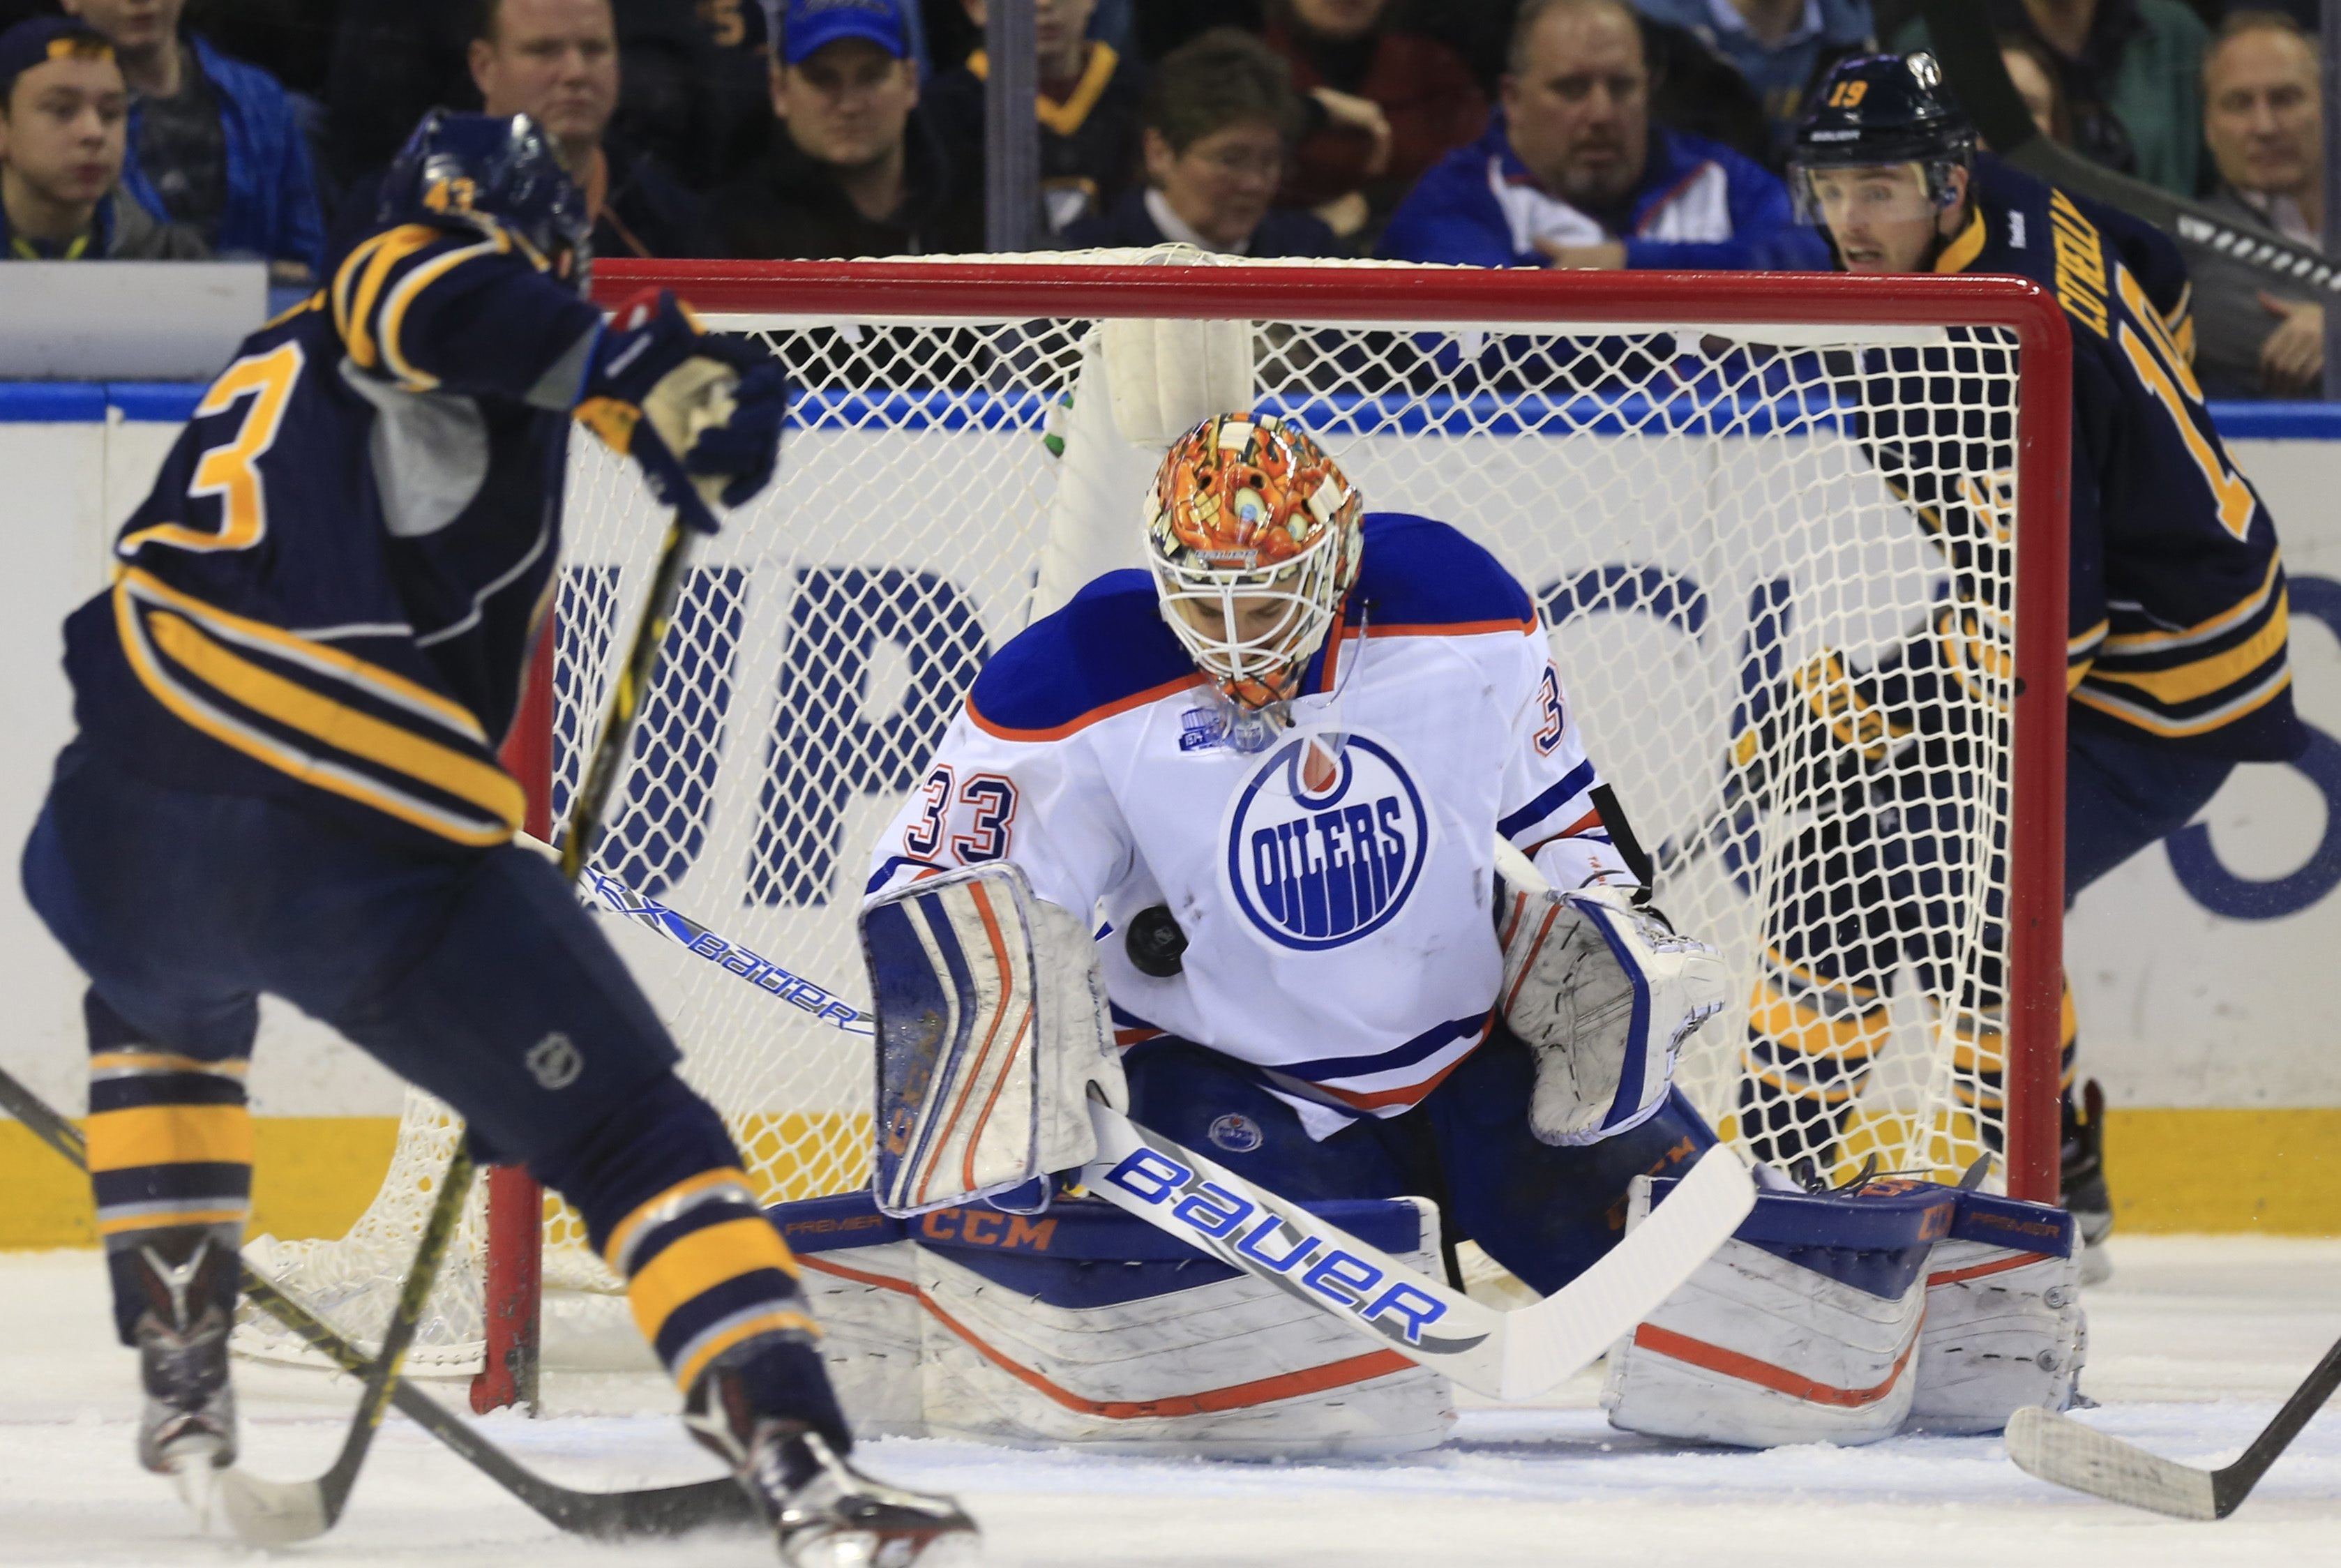 Edmonton goalie Cam Talbot stops the save against Daniel Catenacci of the Sabres in the first period of Tuesday night's game.